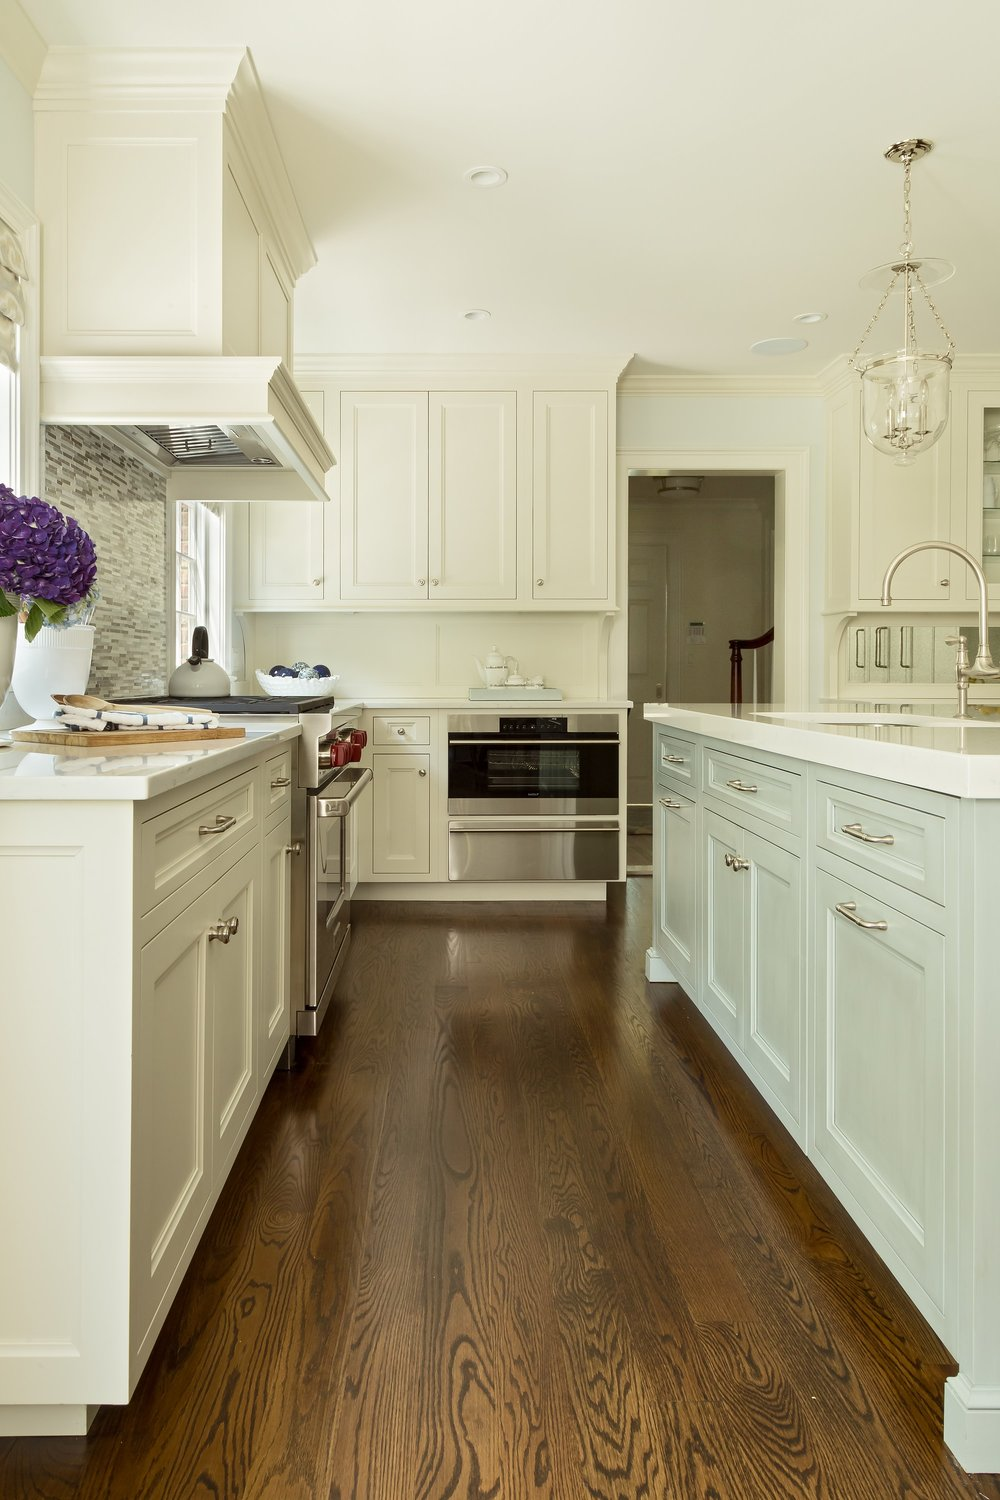 Transitional style kitchen with wooden floor